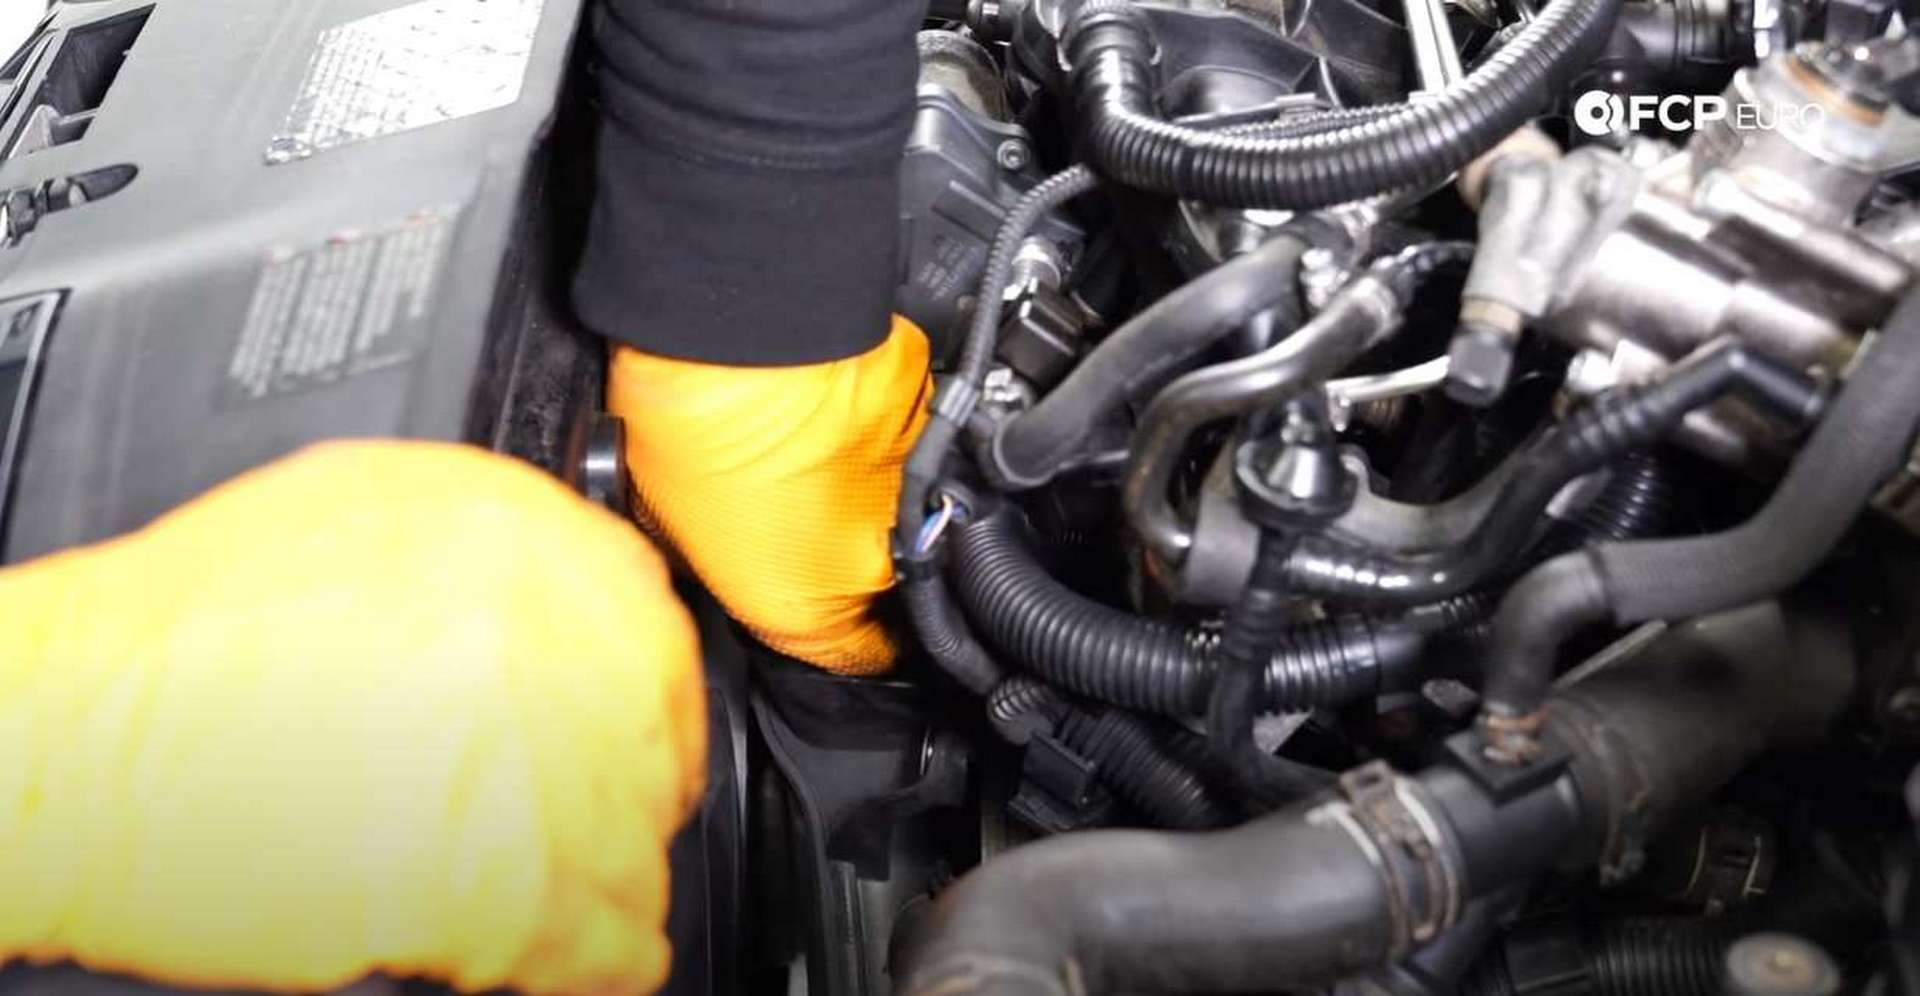 10-DIY-Mk5-GTI-Oil-FIlter-Housing_Removing-Intake-Components